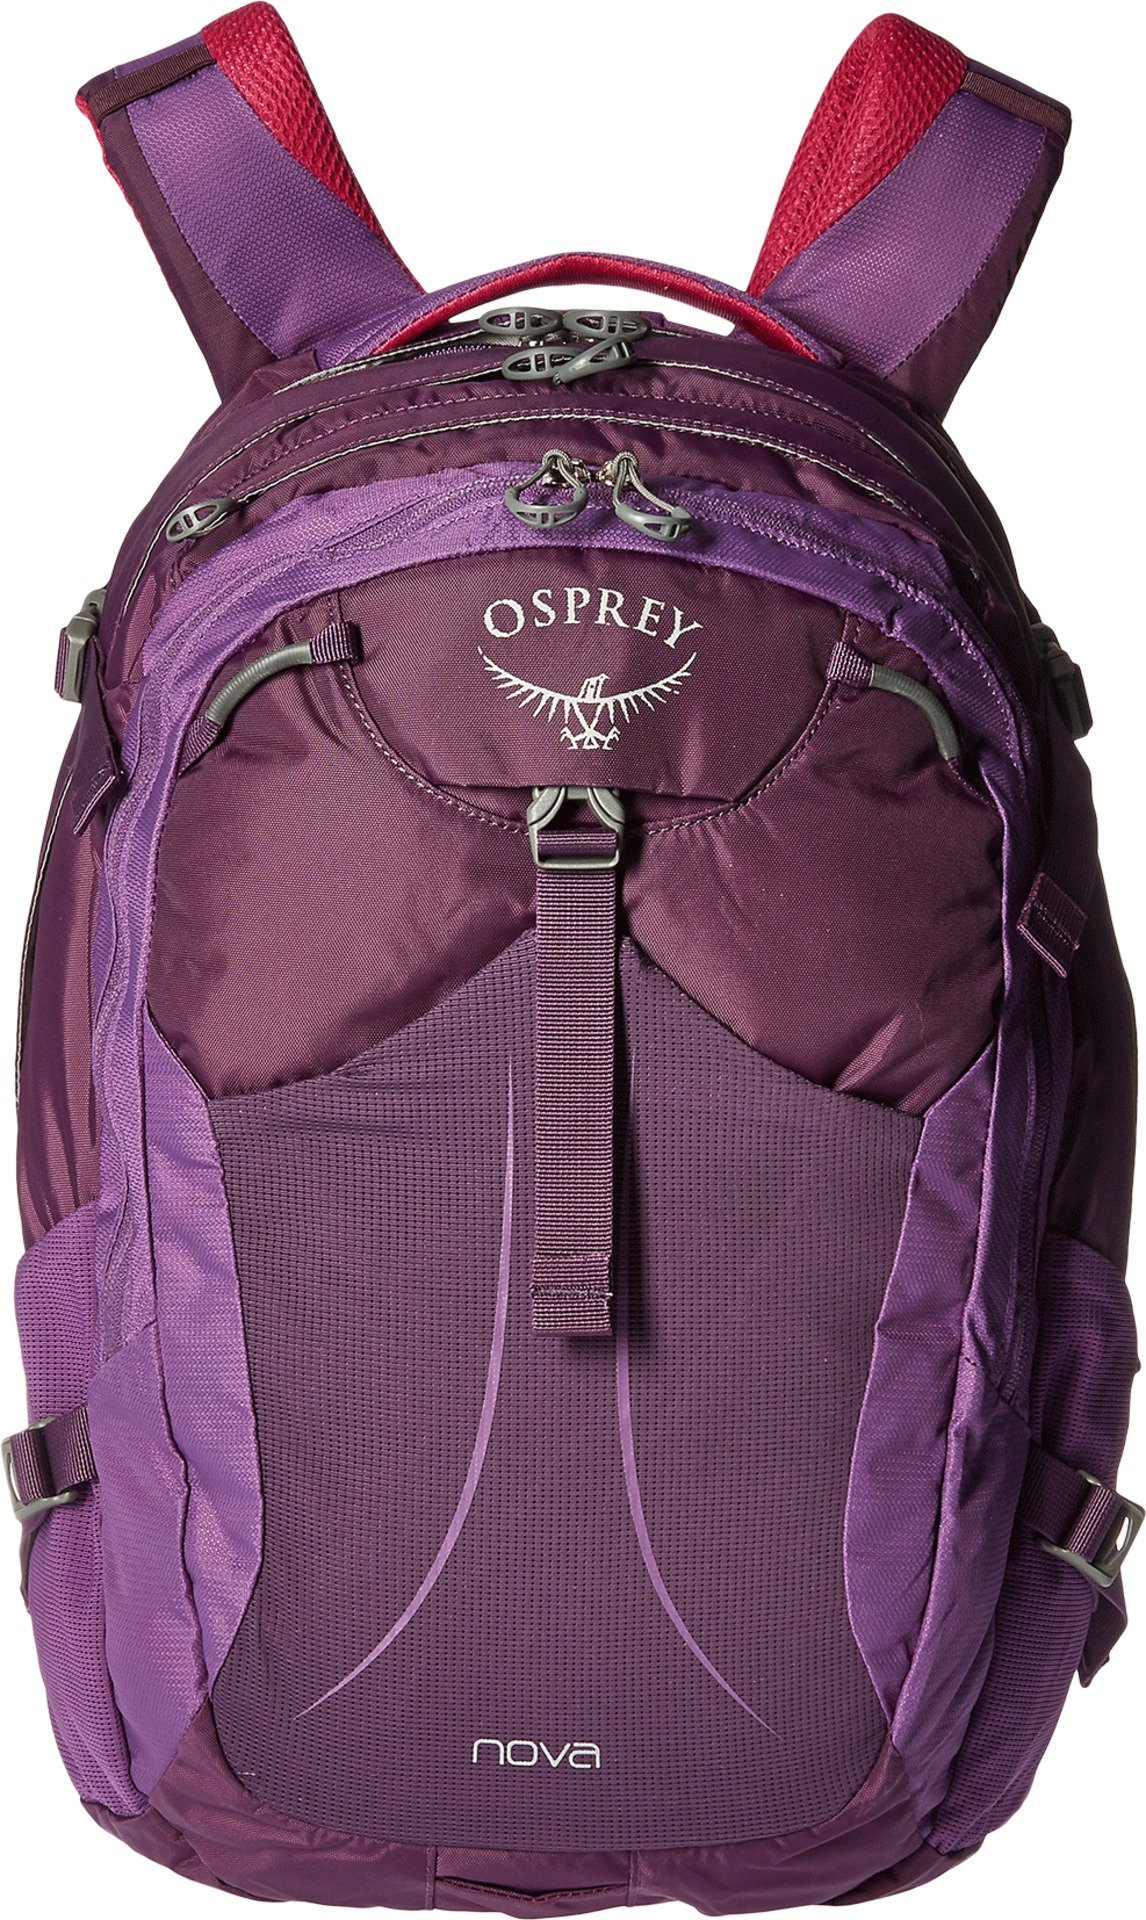 Osprey Packs Nova Daypack, Mariposa Purple